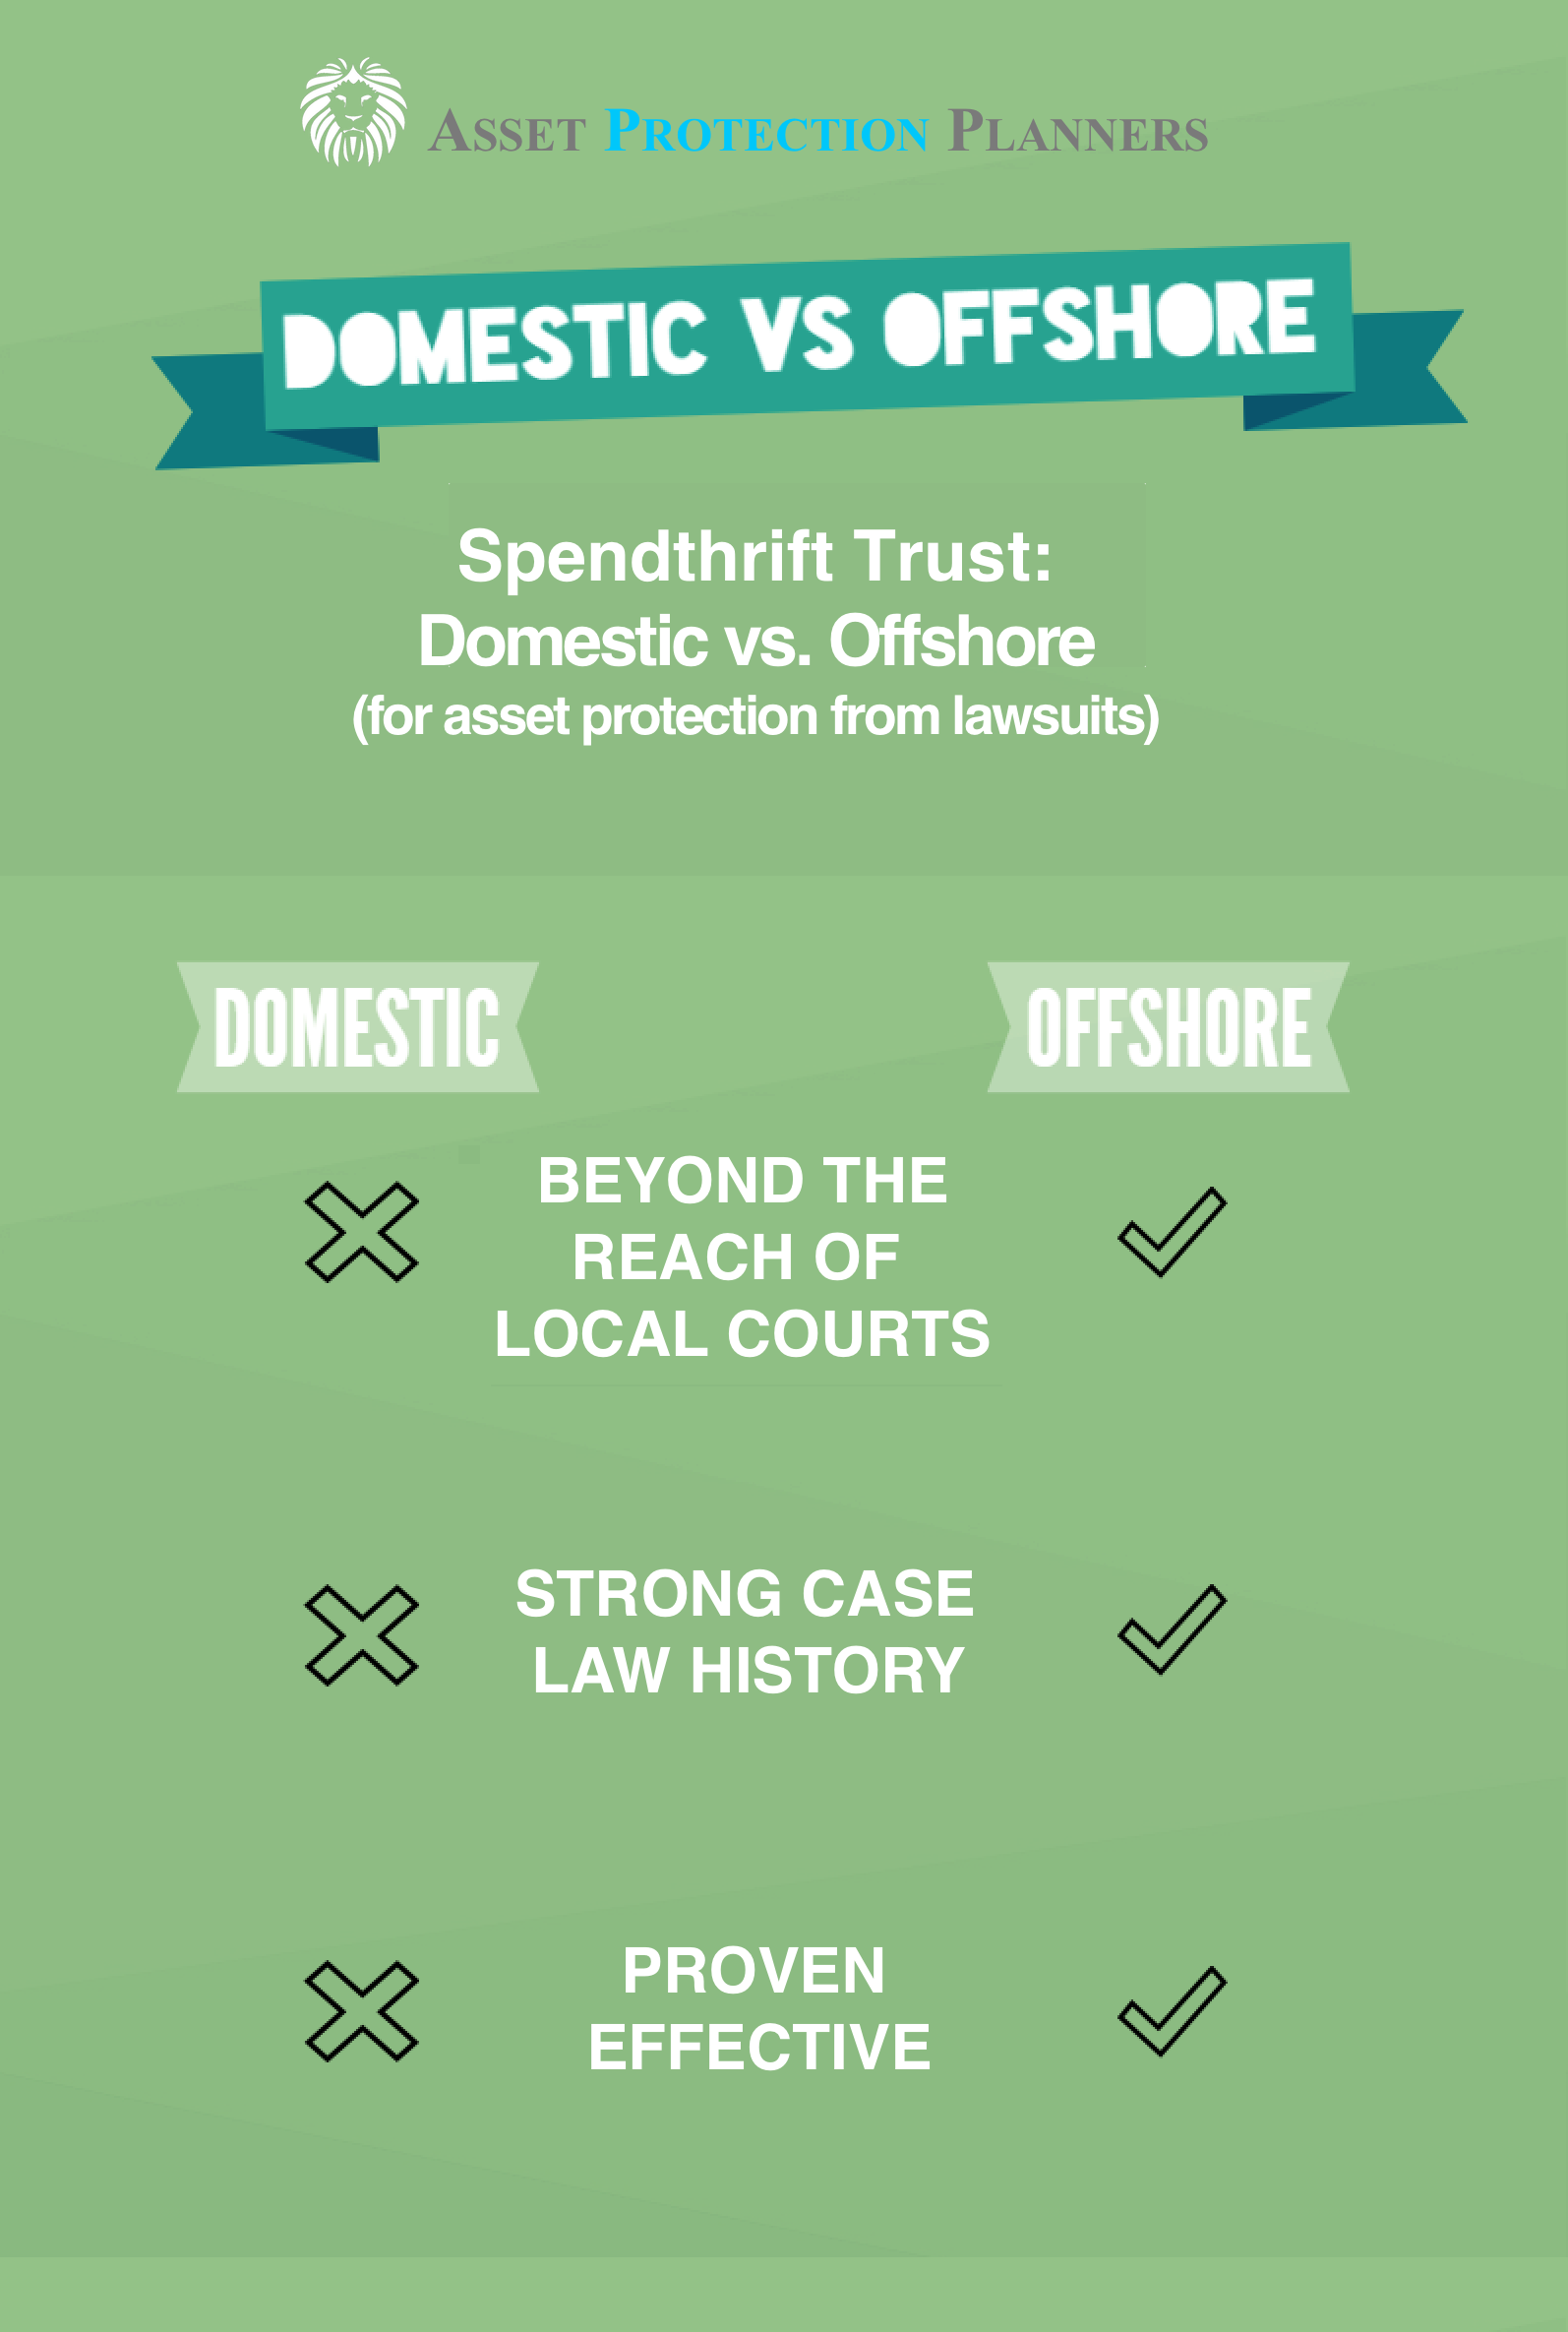 Domestic vs. offshore spendthrift trust